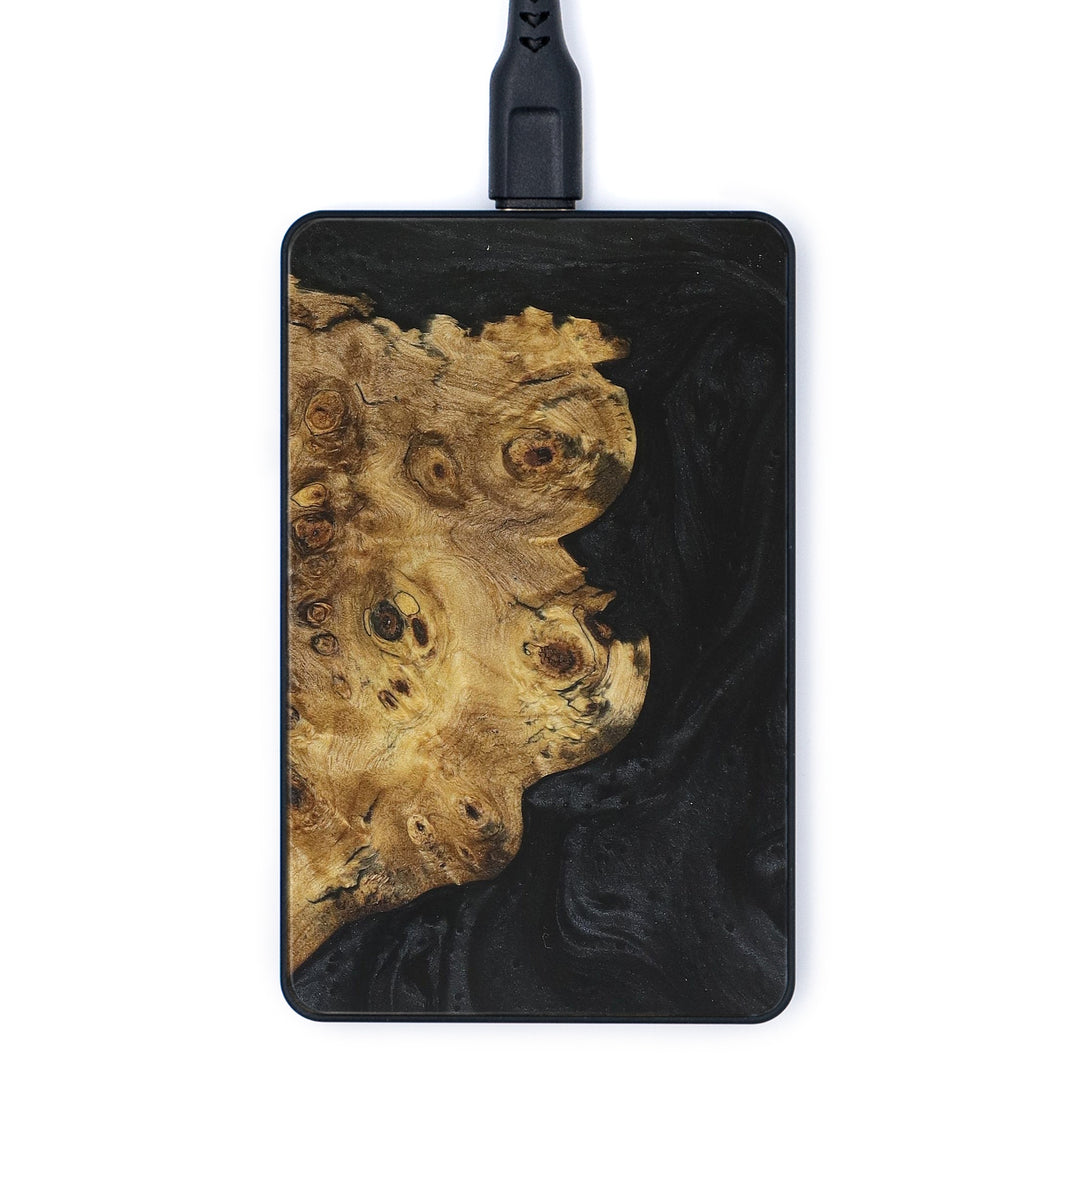 Thin Wood+Resin Wireless Charger - Anibal (Black, 360042)